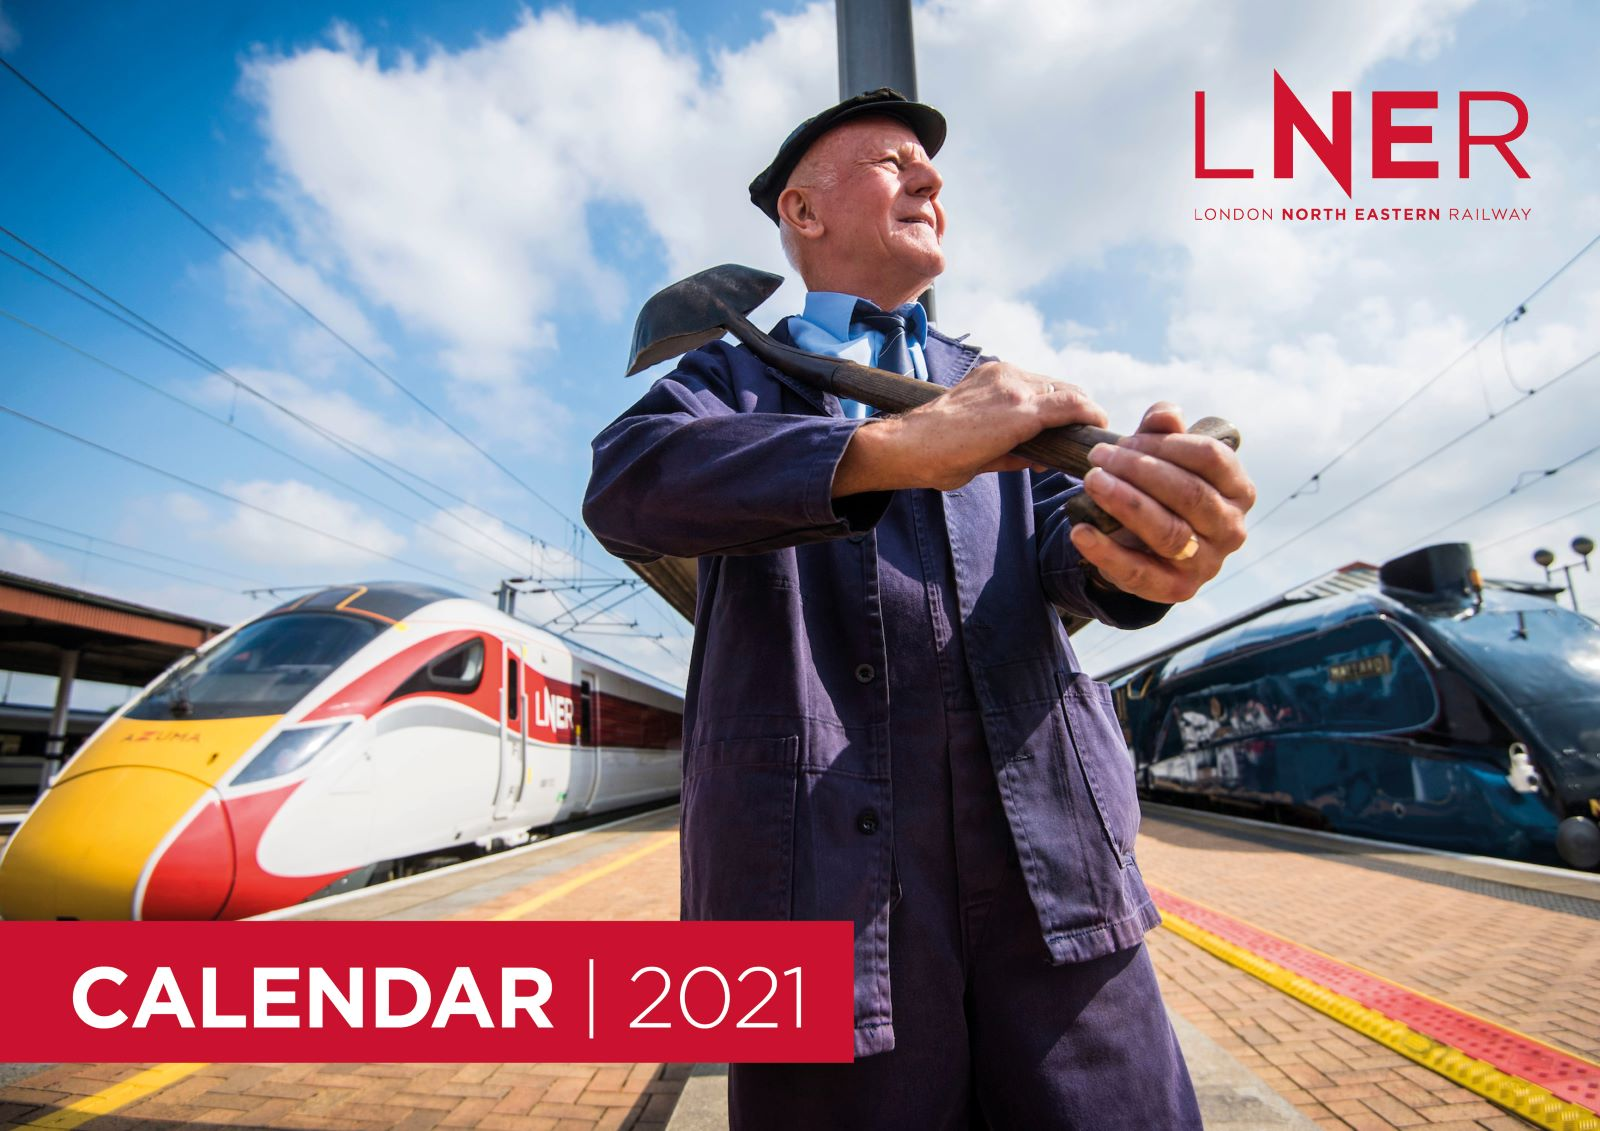 Save the date! LNER launches first calendar celebrating stations and destinations for 2021